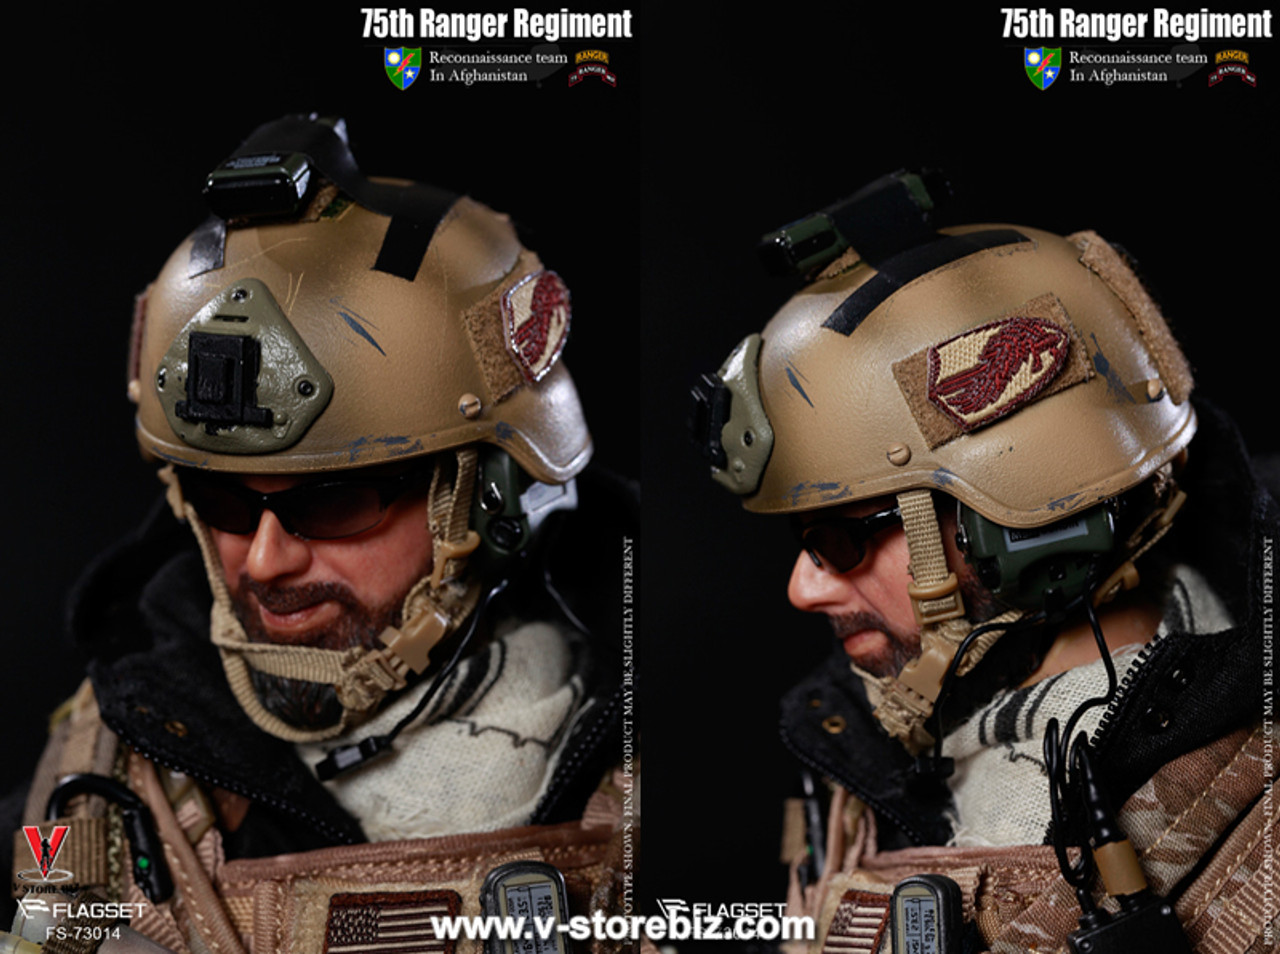 FLAGSET FS-73014 1//6 75th Ranger Regimen Reconnaissance Team Soldier Figure Toys